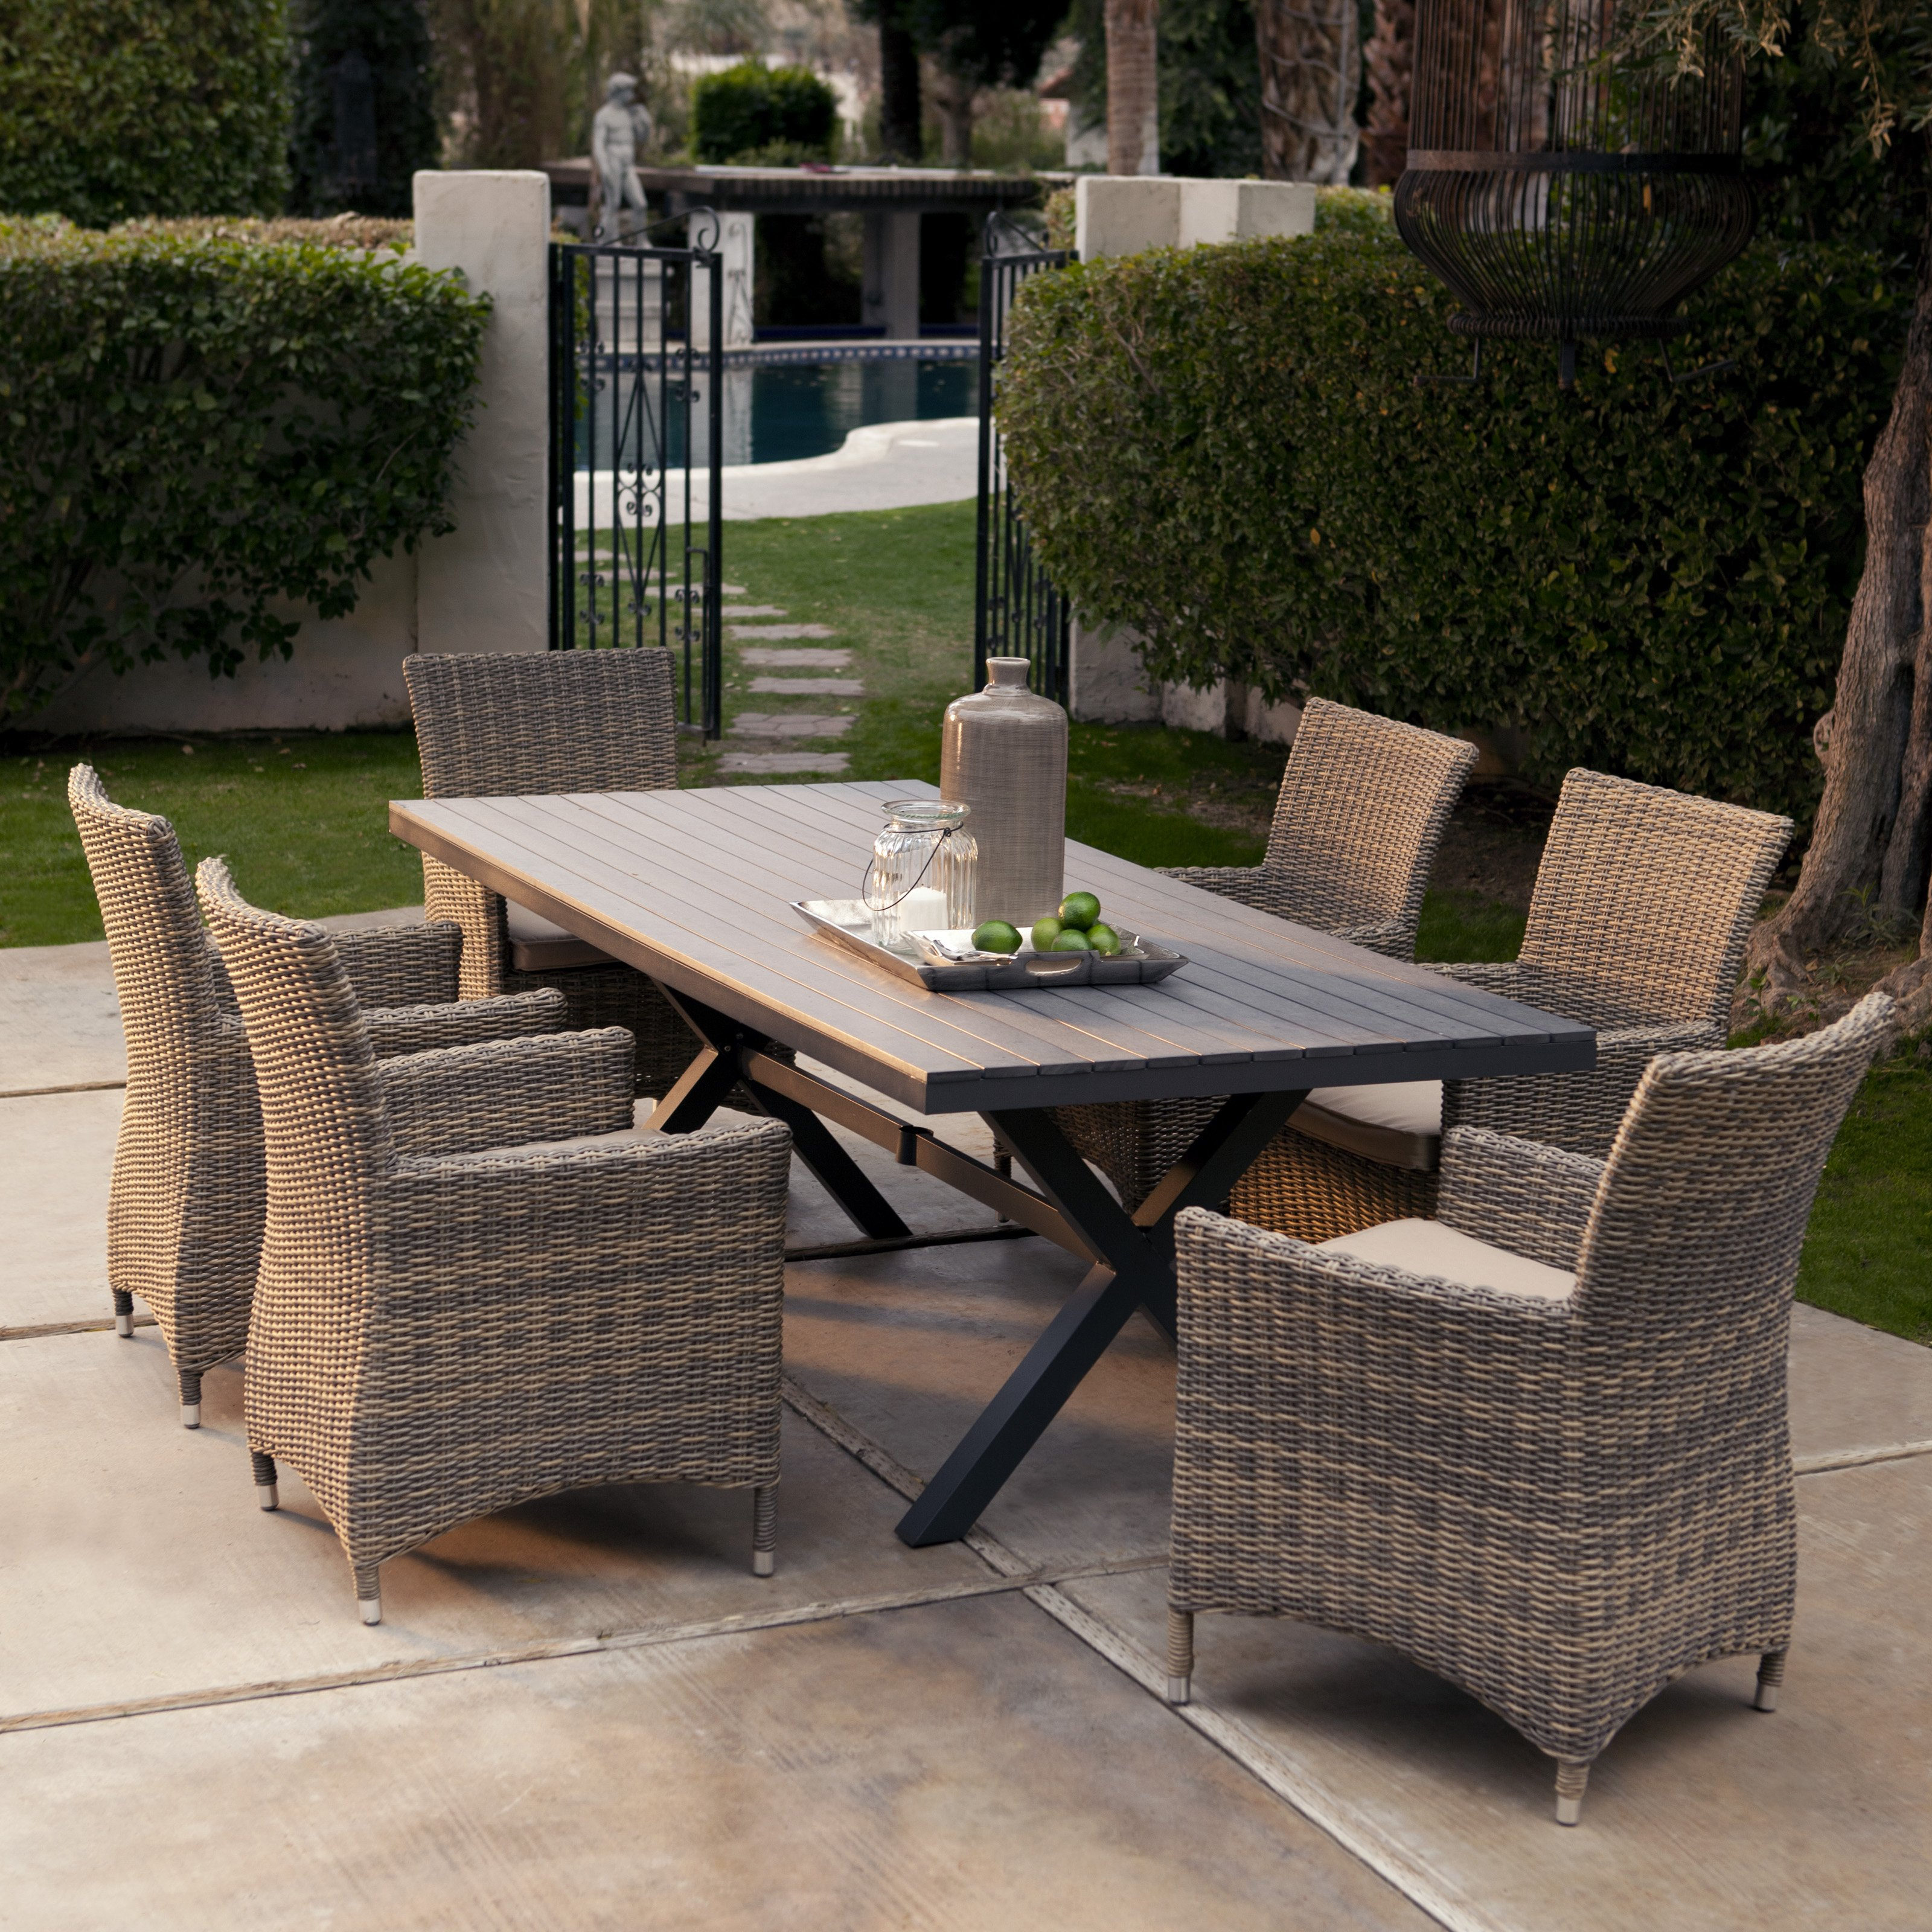 Outdoor dining set to enjoy your dinner – CareHomeDecor